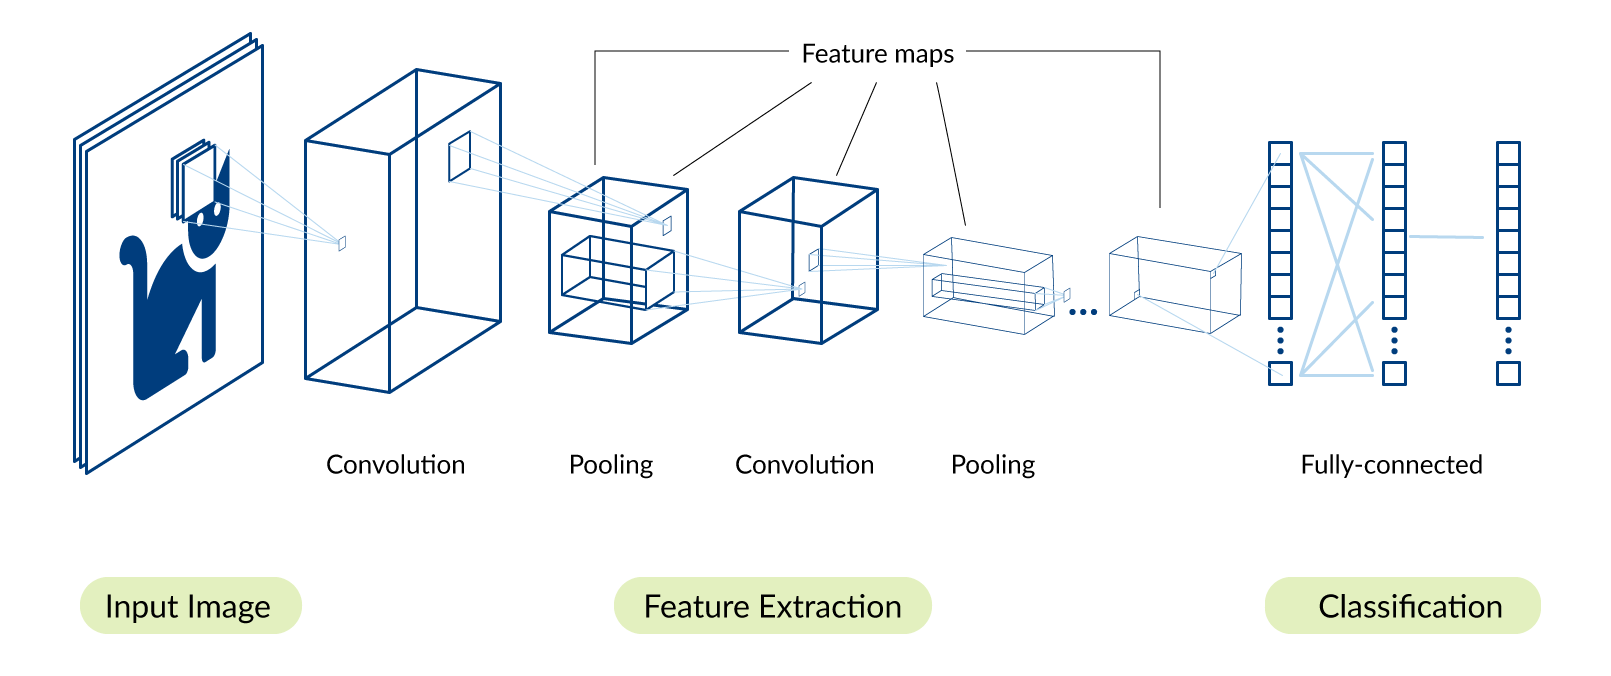 Schematic functionality of AlexNet, adapted from https://de.mathworks.com/discovery/convolutional-neural-network.html